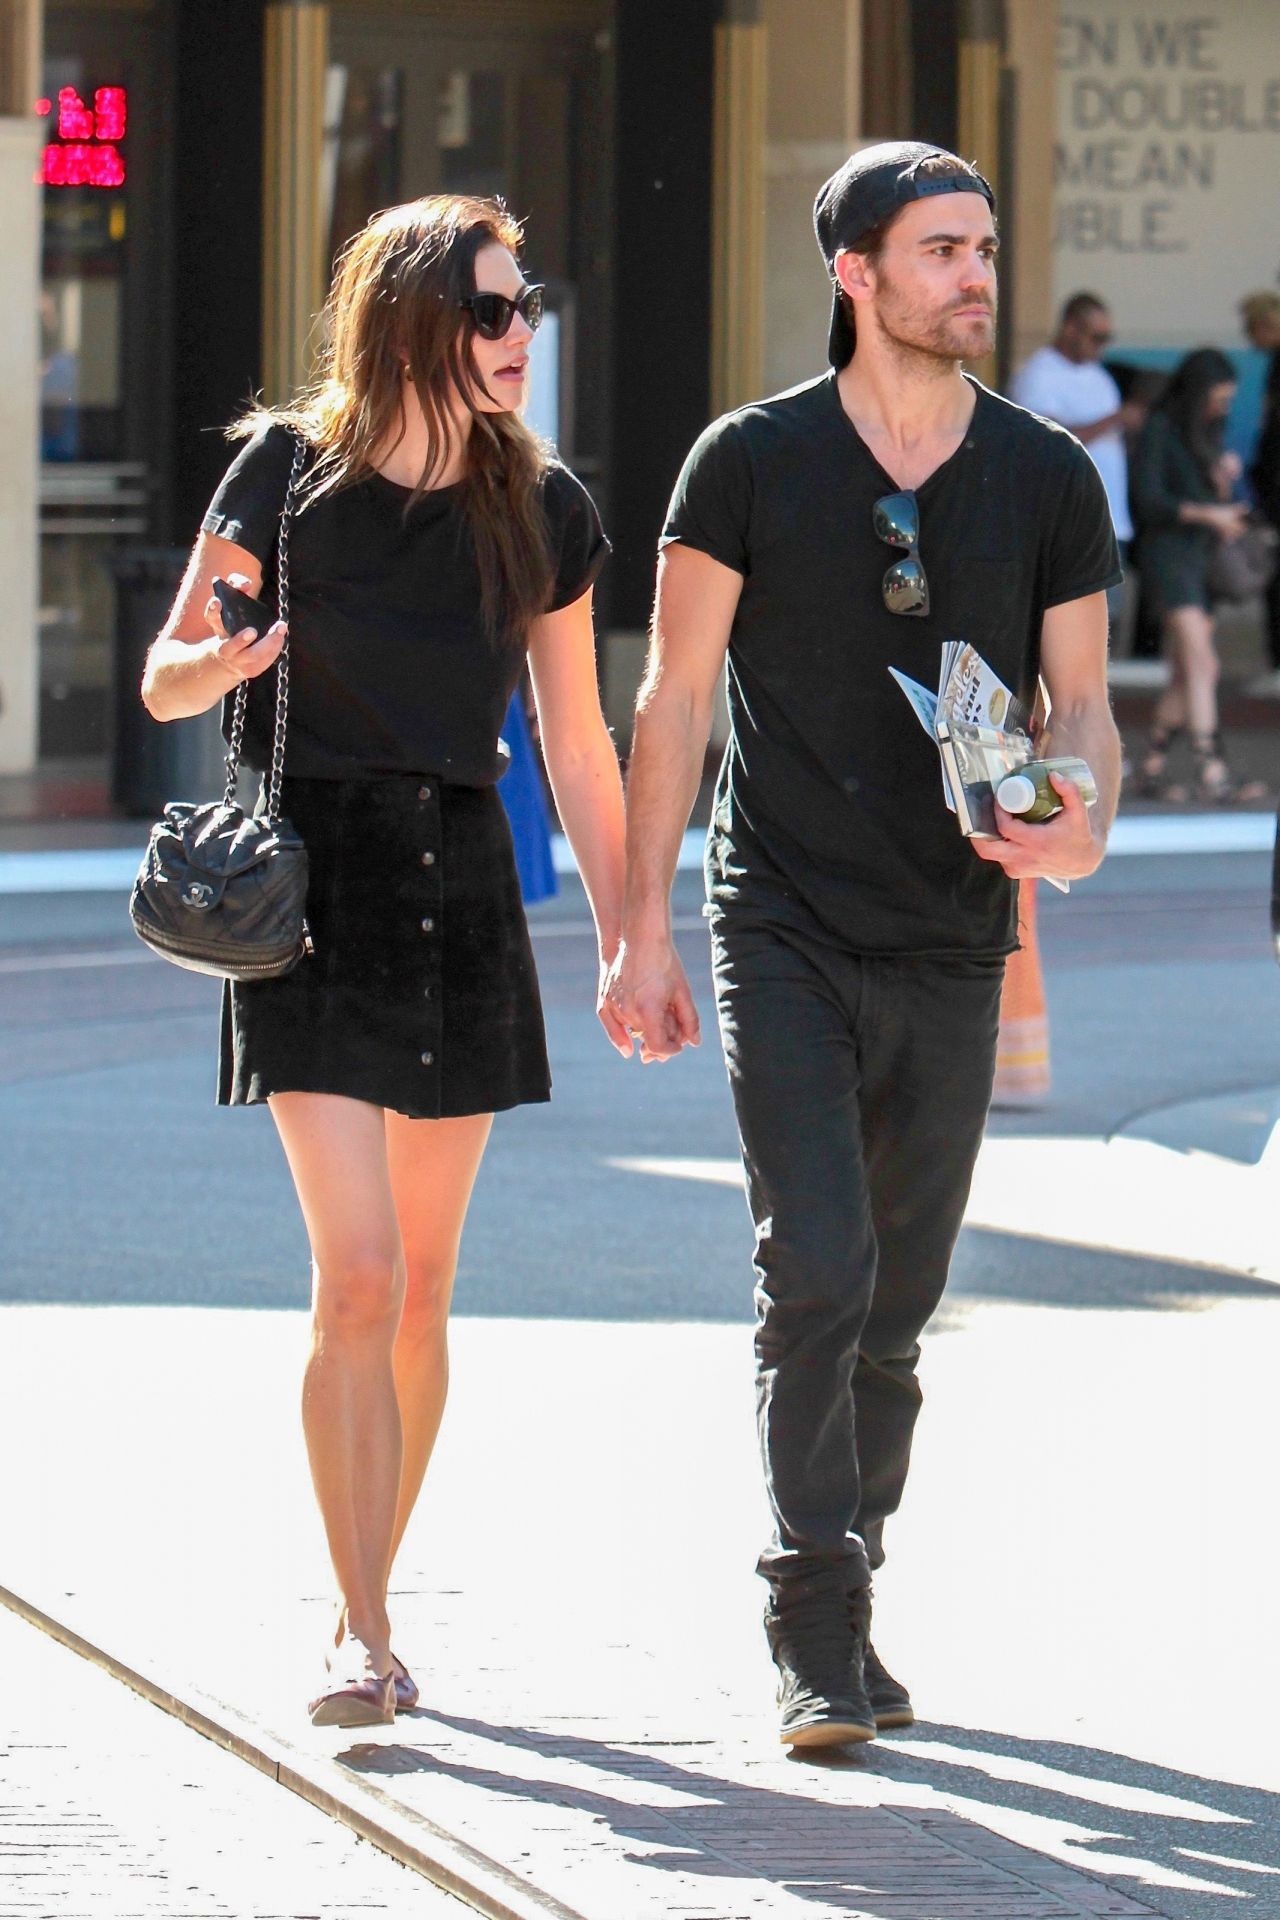 Thomas McDonell Photos, News, and Videos | Just Jared Jr ... |Thomas Mcdonell And Phoebe Tonkin